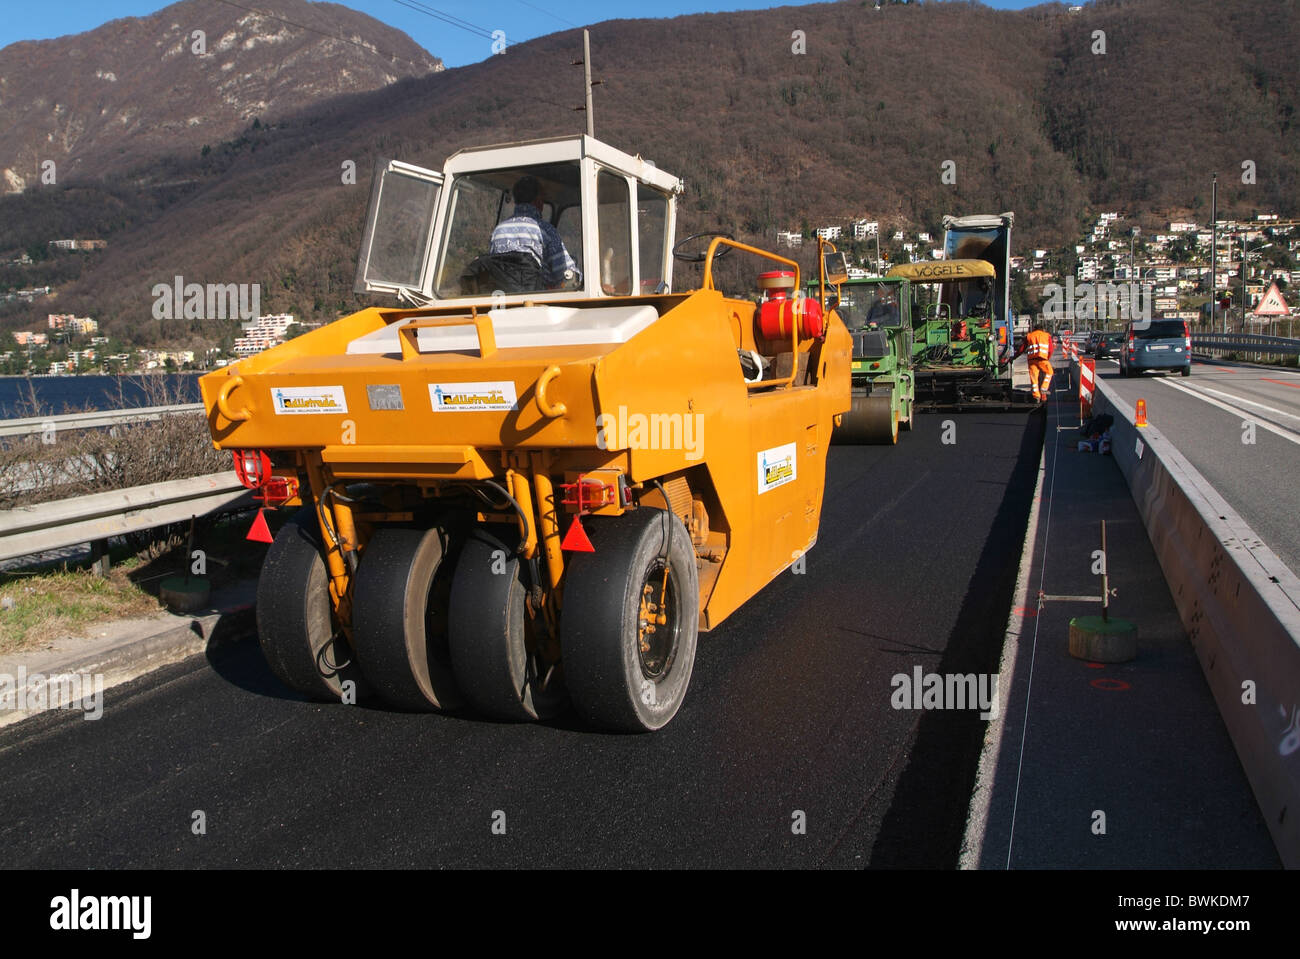 paving asphalt renewal innovation machine construction machine building site worker construction street tran stock image